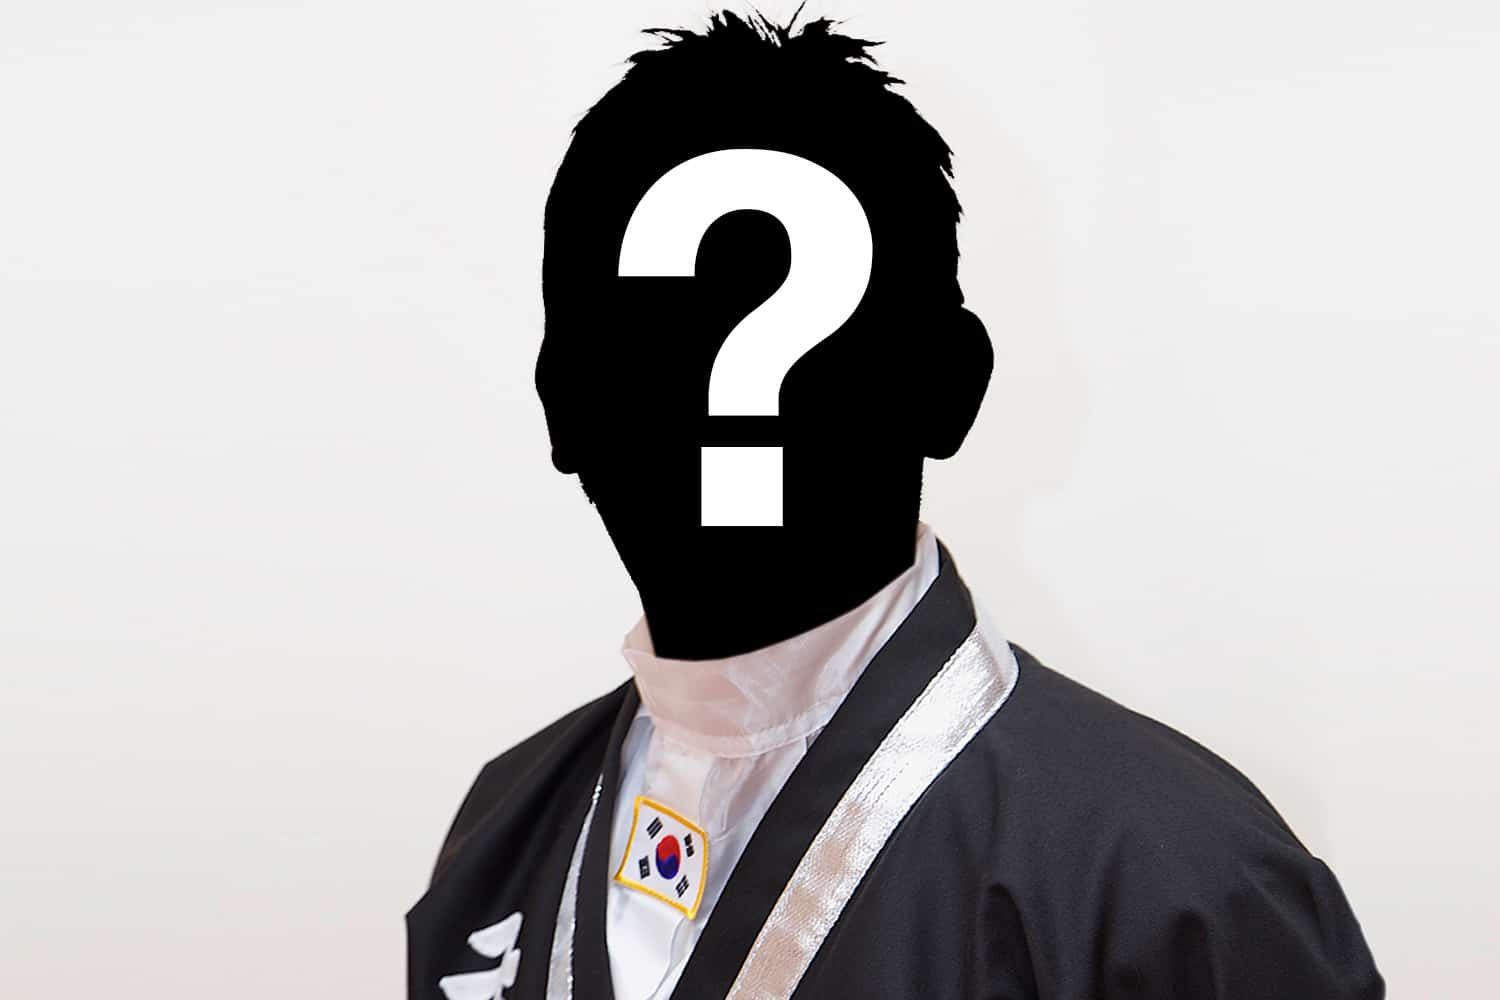 Faceless Kuk Sool Won black belt. Could this be you?